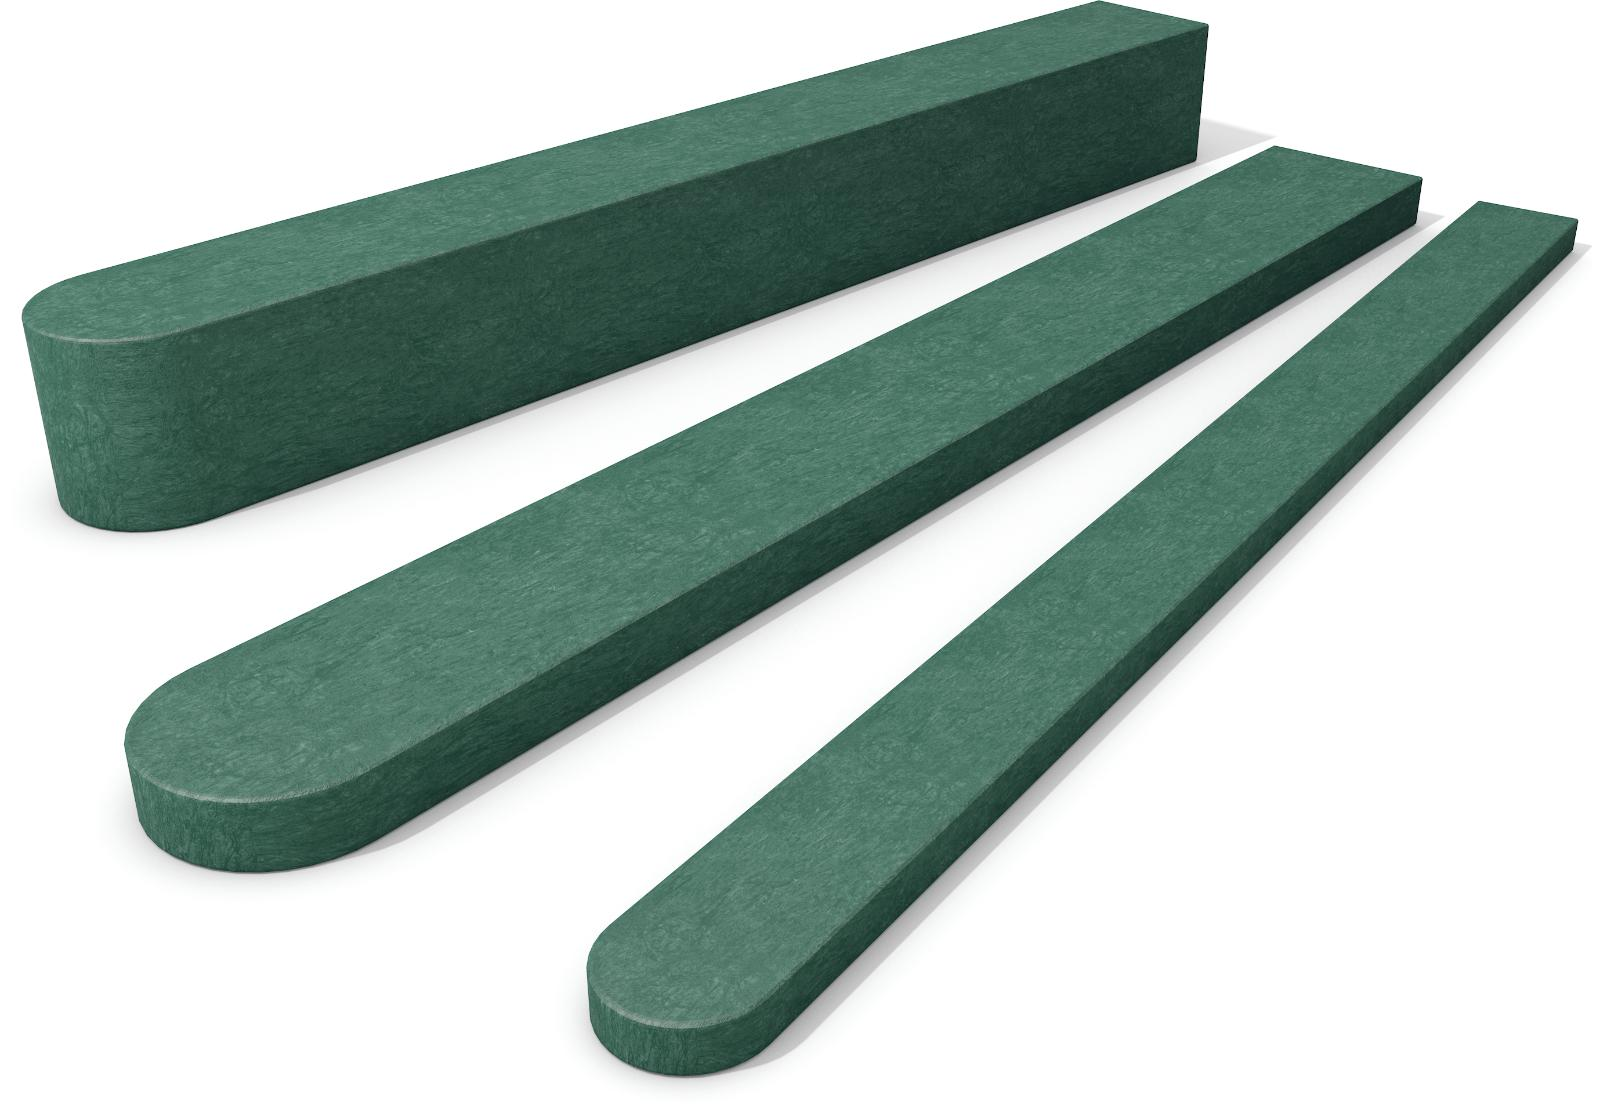 Fence Pale with Round End Green 20mm x 60mm x 1500mm